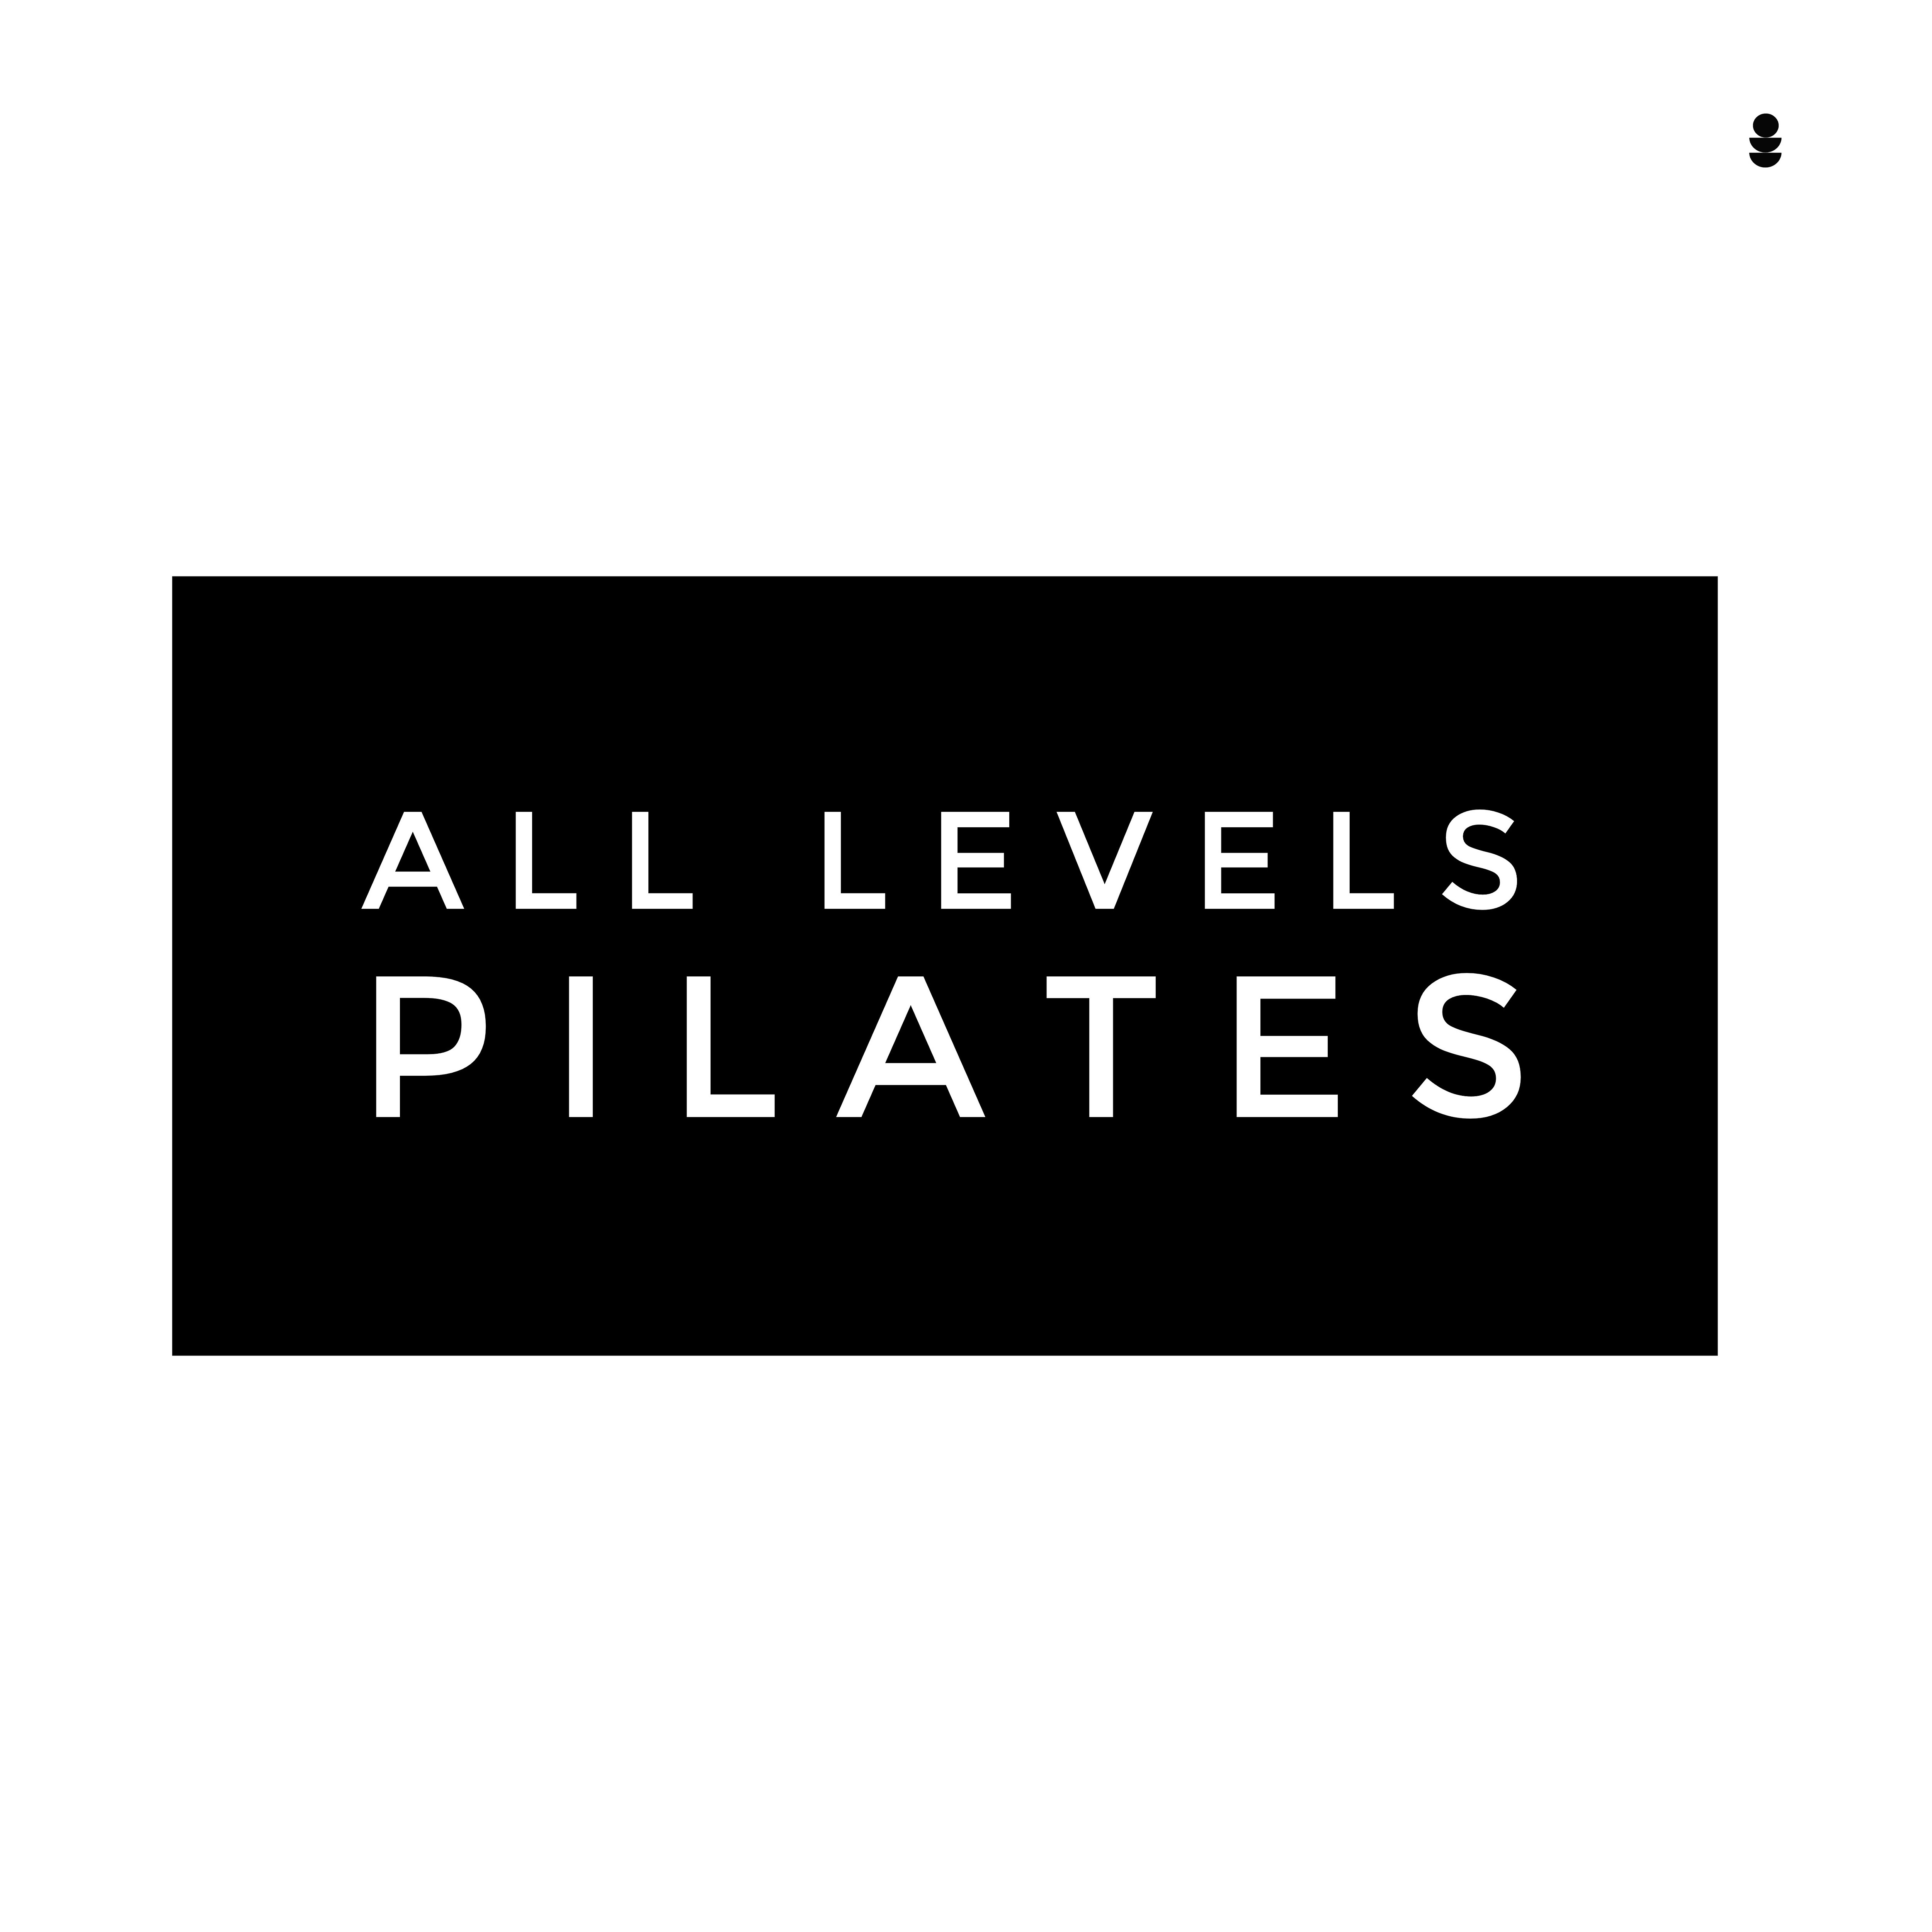 Pilates for All Levels